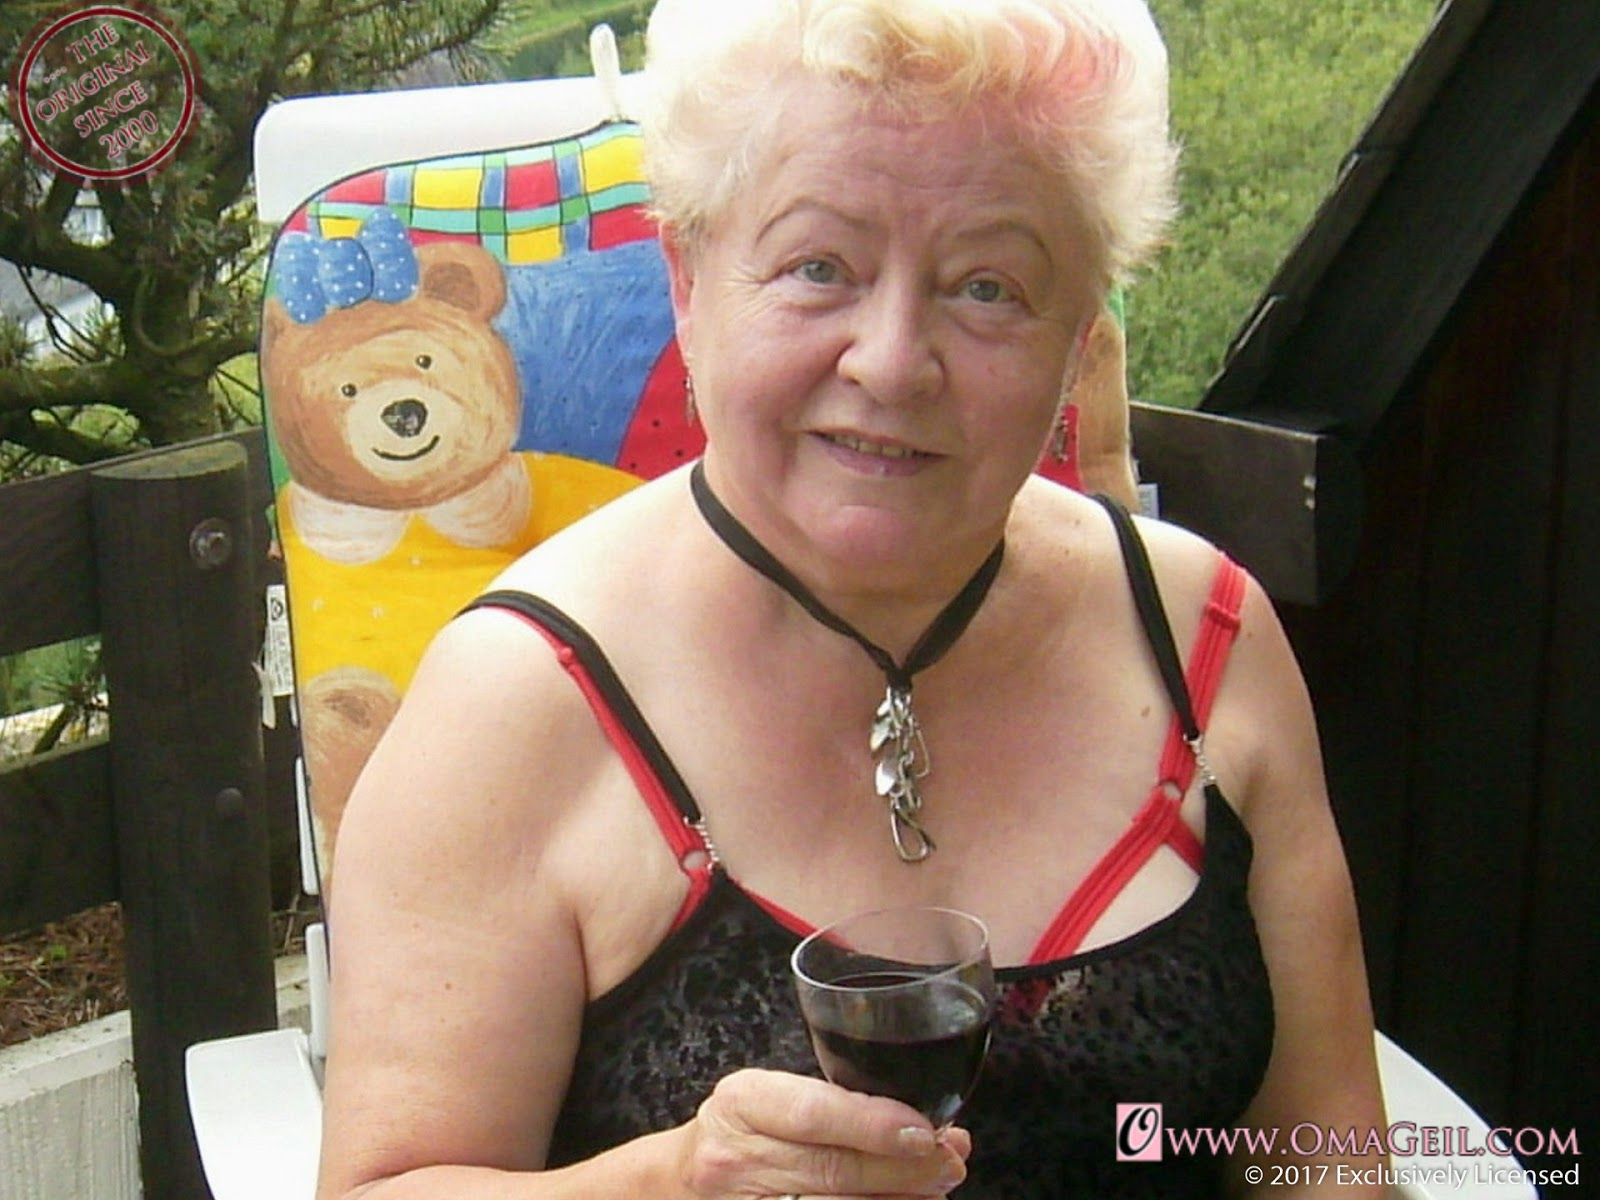 Hot Granny Porn Pictures And Vids - Free Granny And Mature -6677